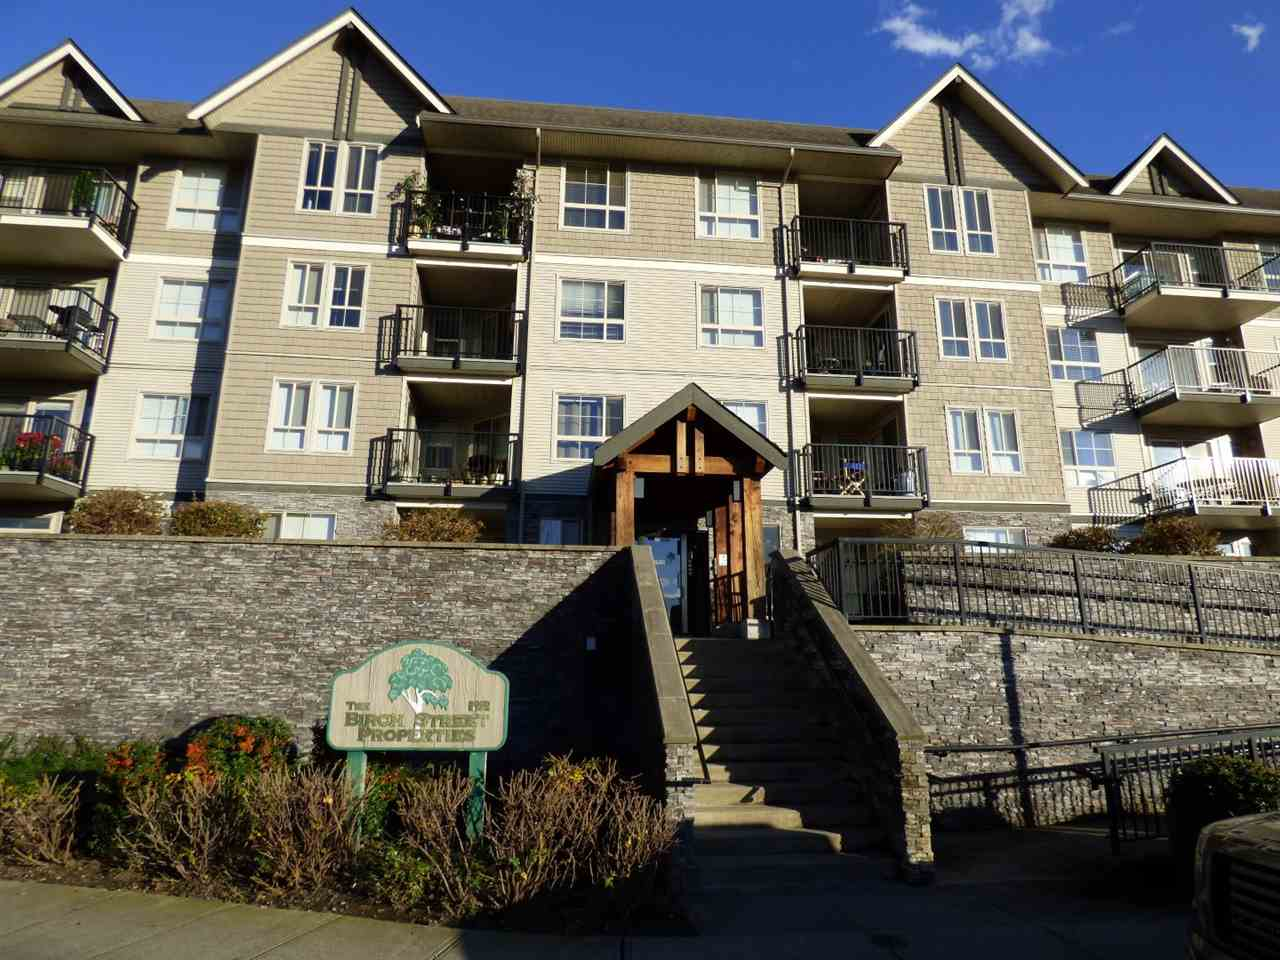 "Main Photo: 205 9000 BIRCH Street in Chilliwack: Chilliwack W Young-Well Condo for sale in ""BIRCH STREET PROPERTIES"" : MLS® # R2156858"